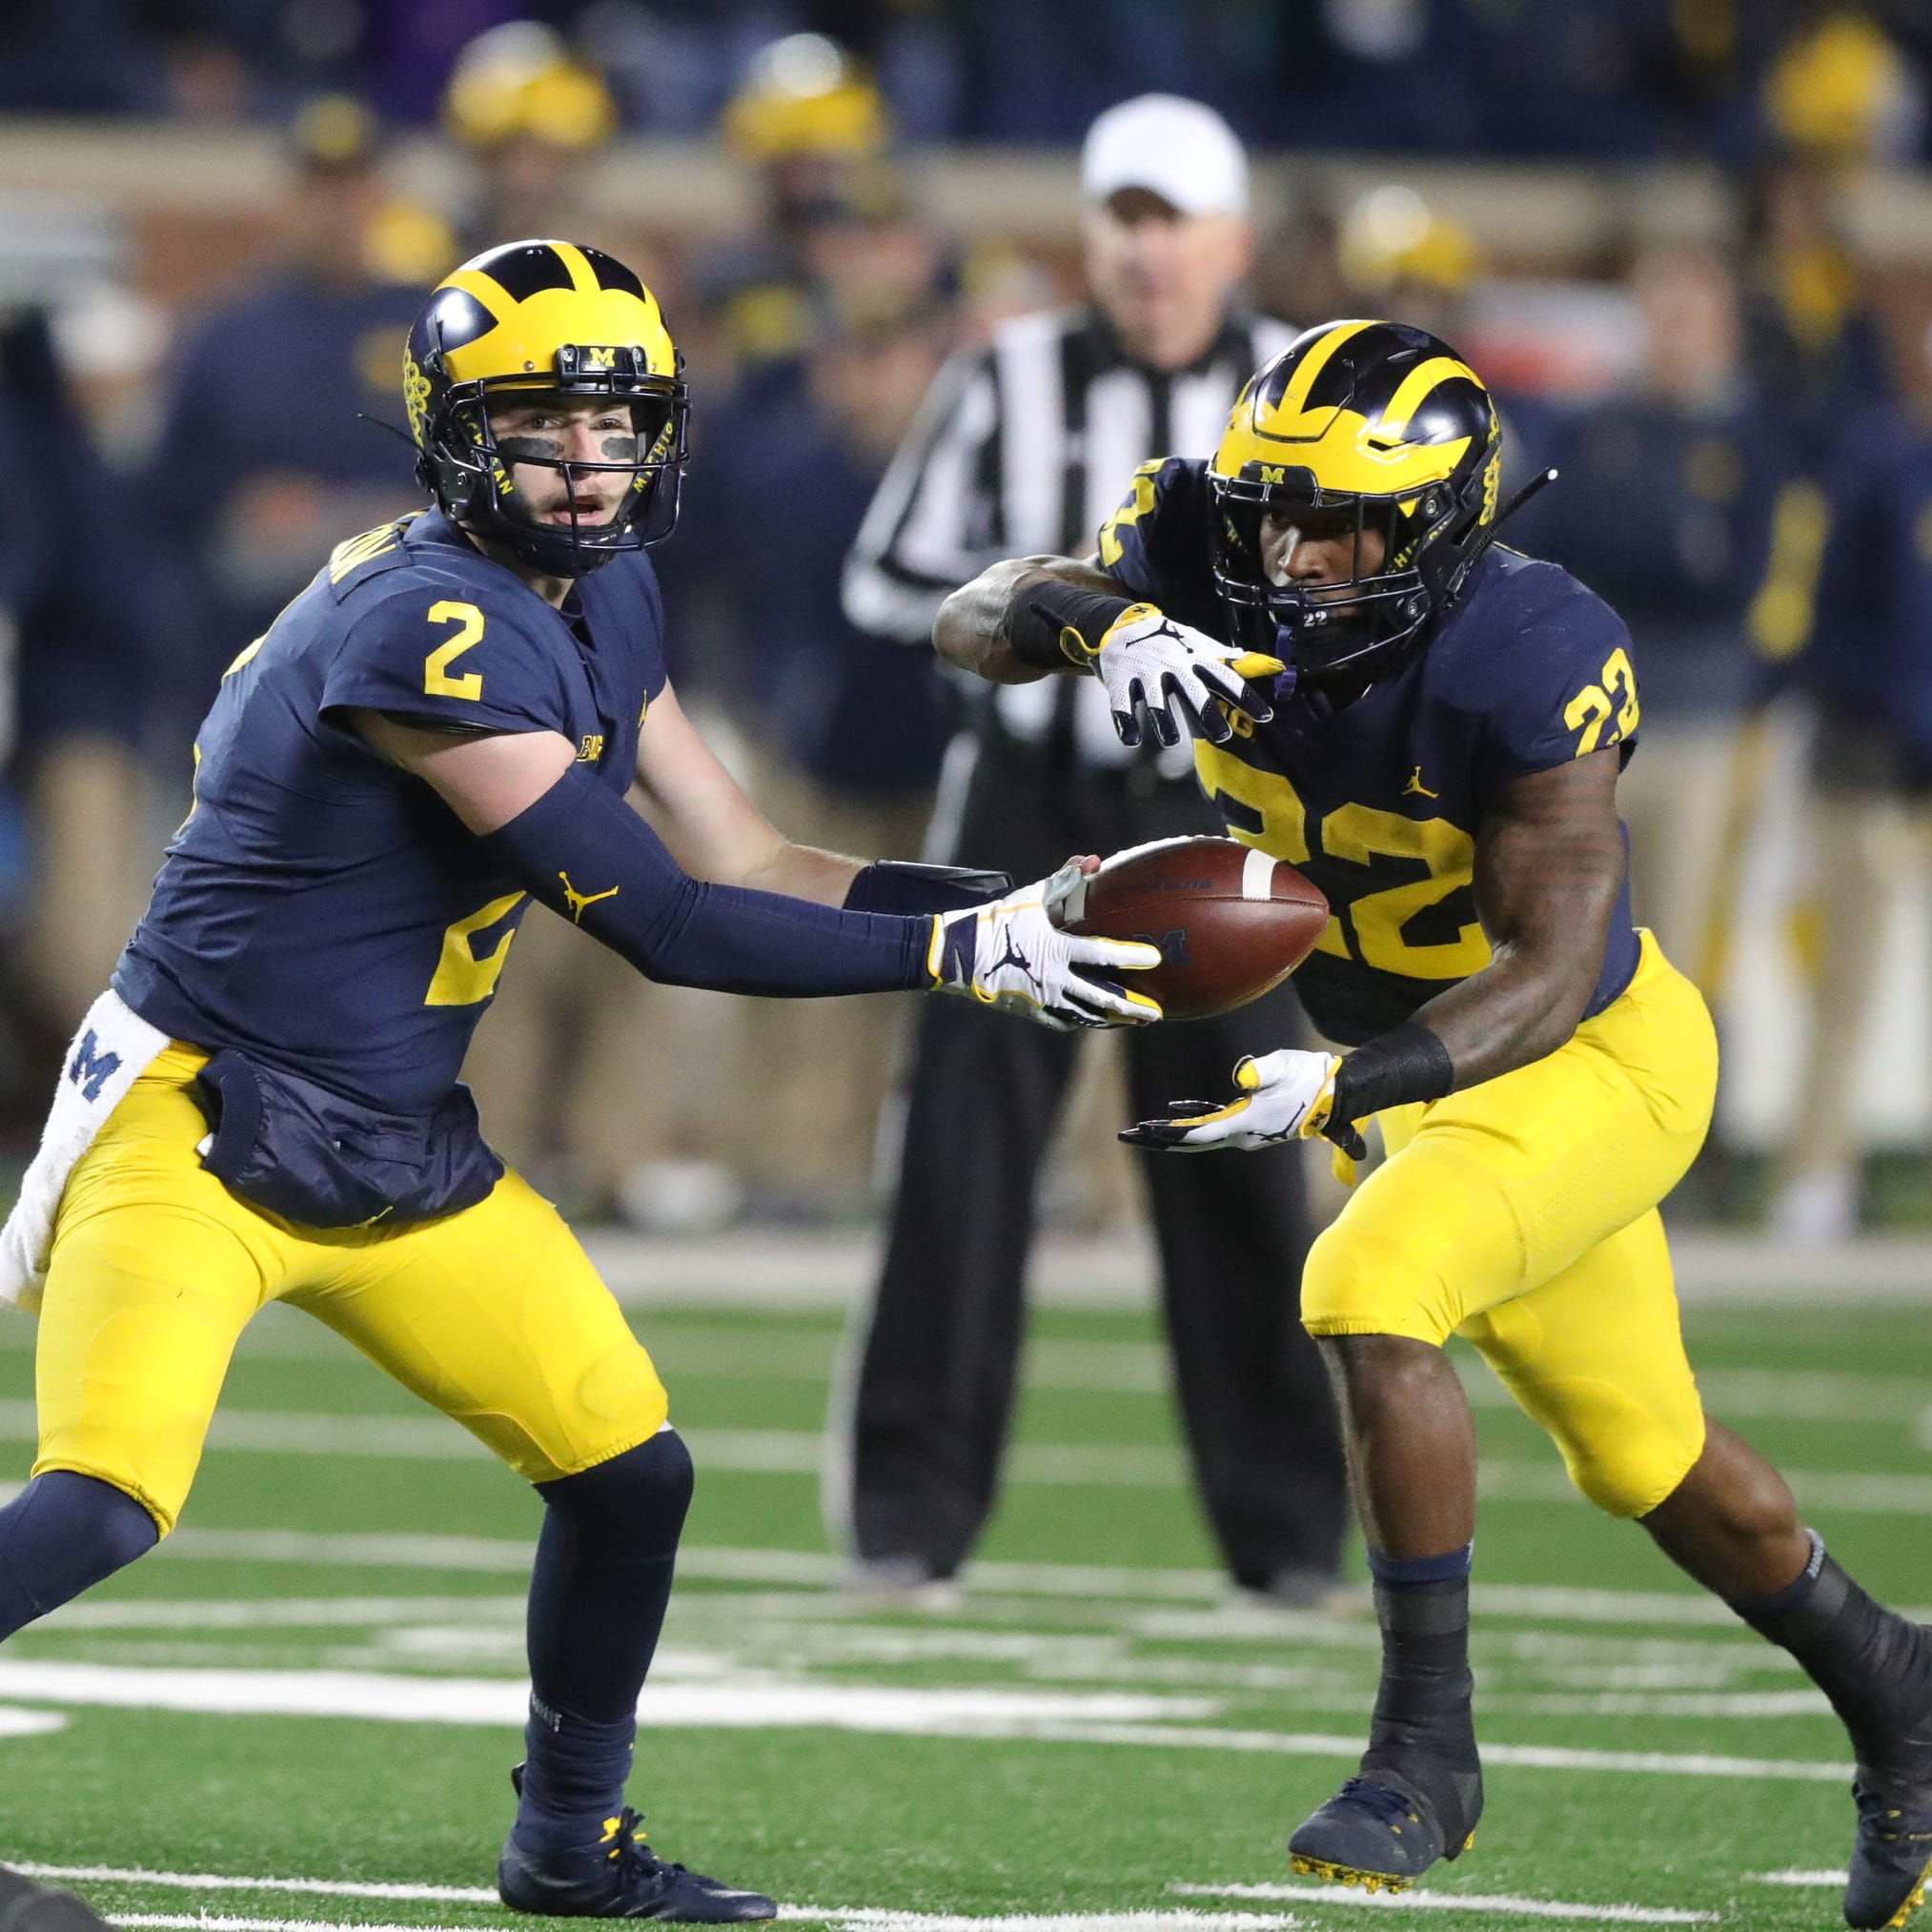 Michigan-Michigan State football: 3 things Wolverines must do to win